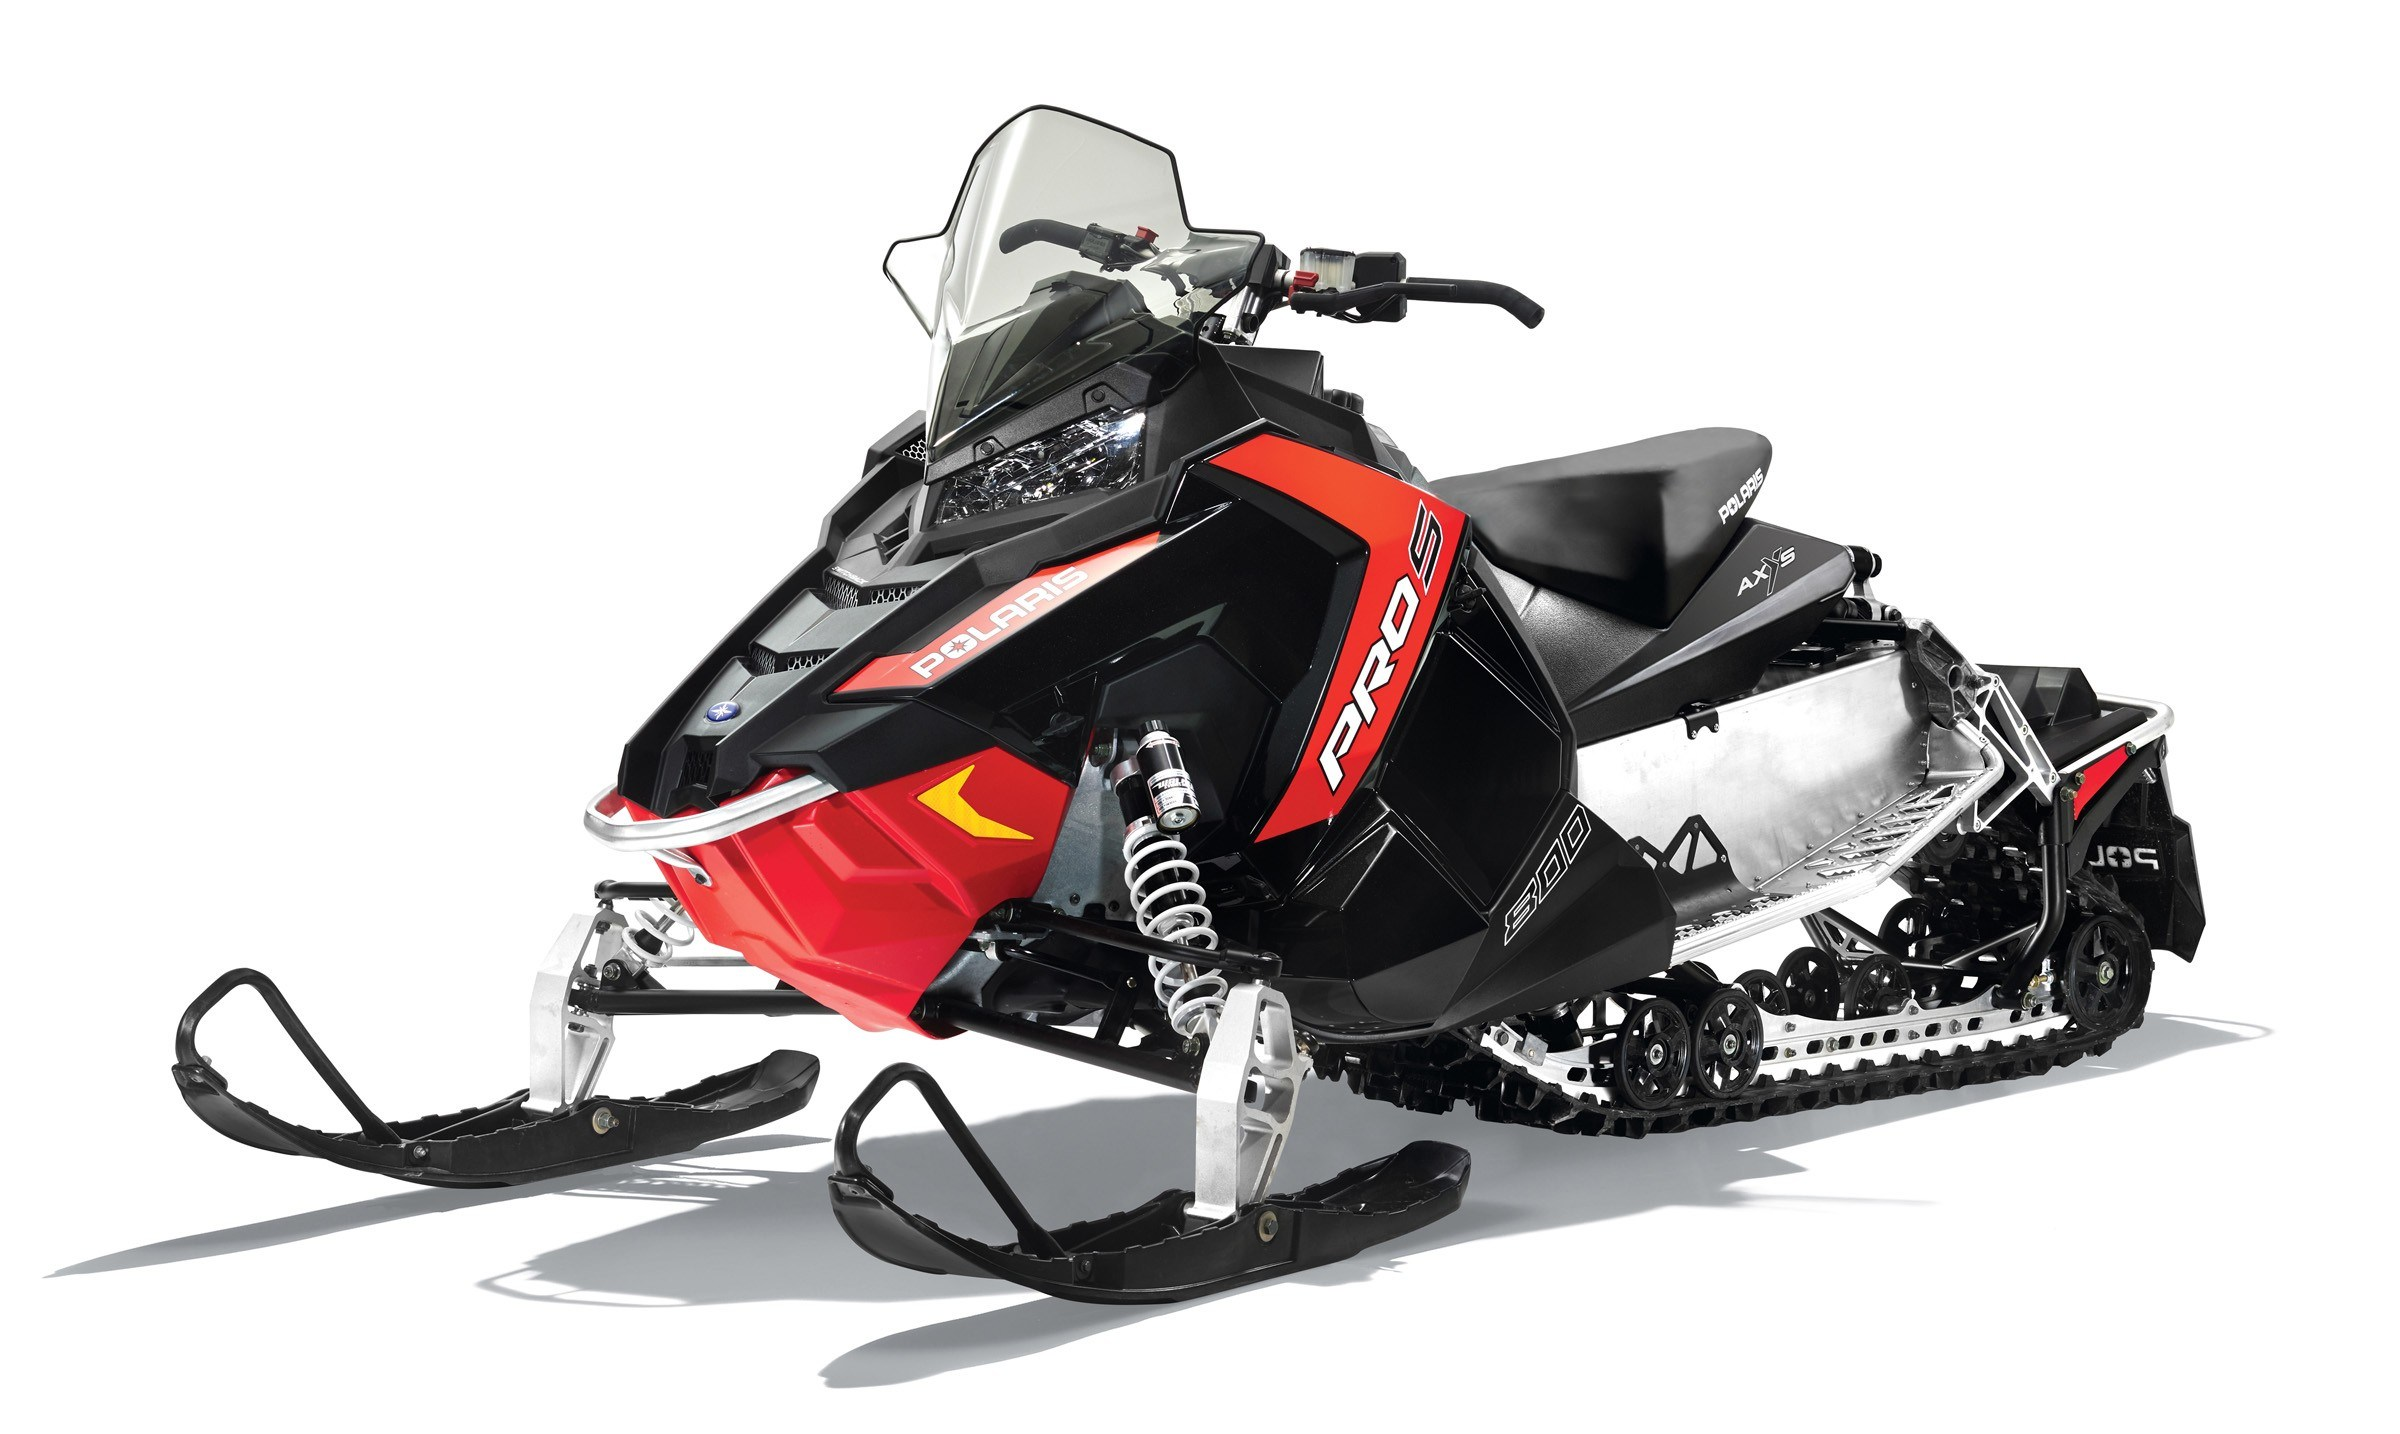 2016 Polaris 800 SWITCHBACK PRO-S ES in Weedsport, New York - Photo 7